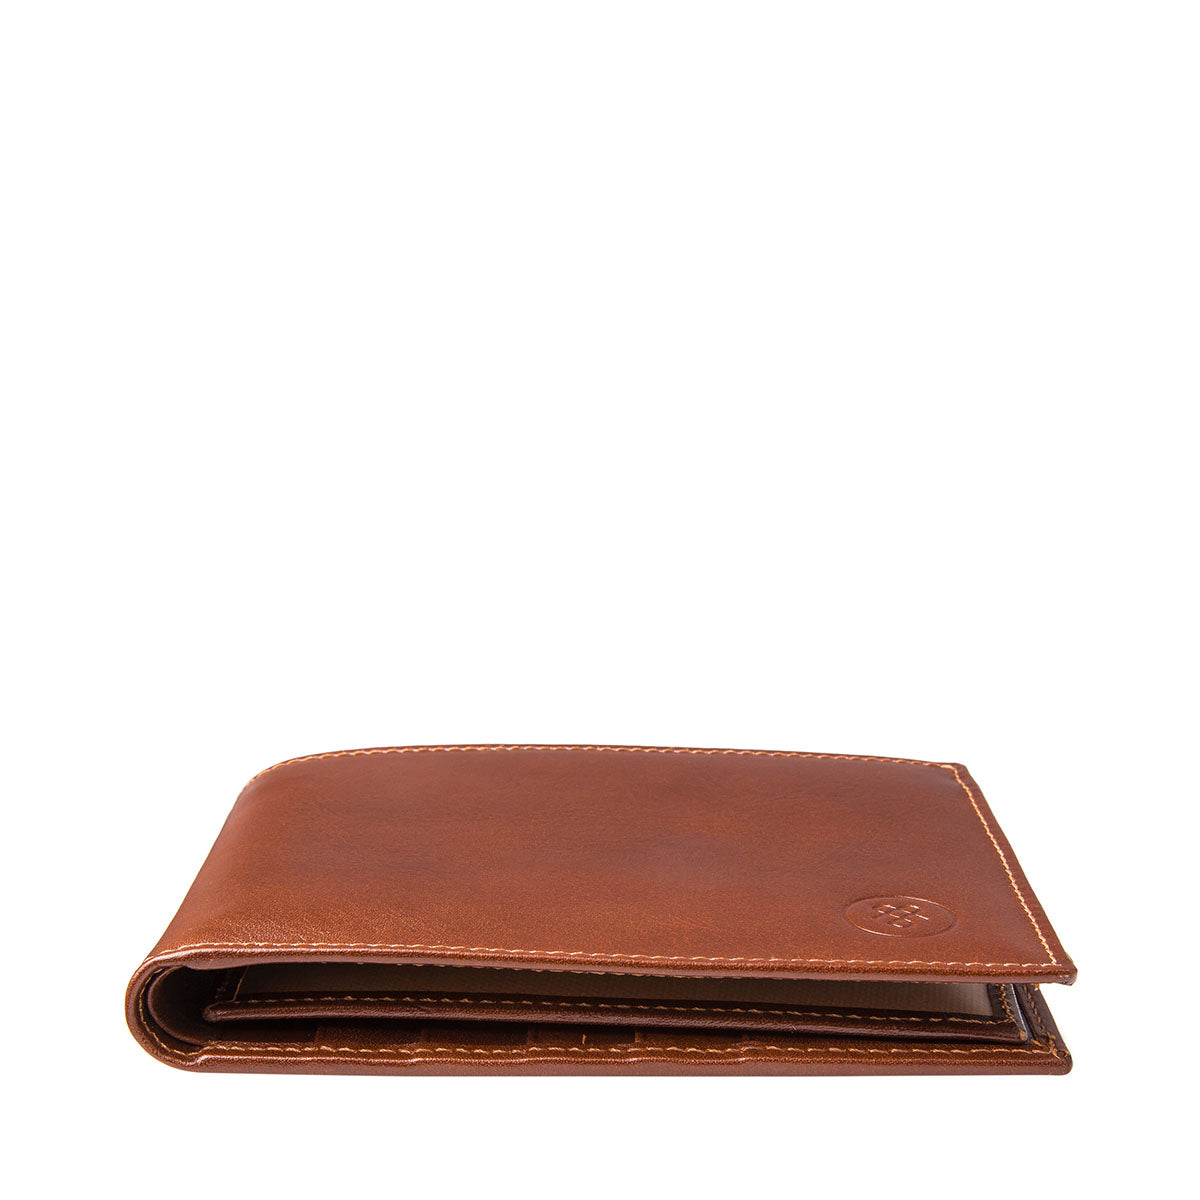 Image 6 of the 'Gallucio' Chestnut Veg-Tanned Leather Tri Fold Credit Card Wallet